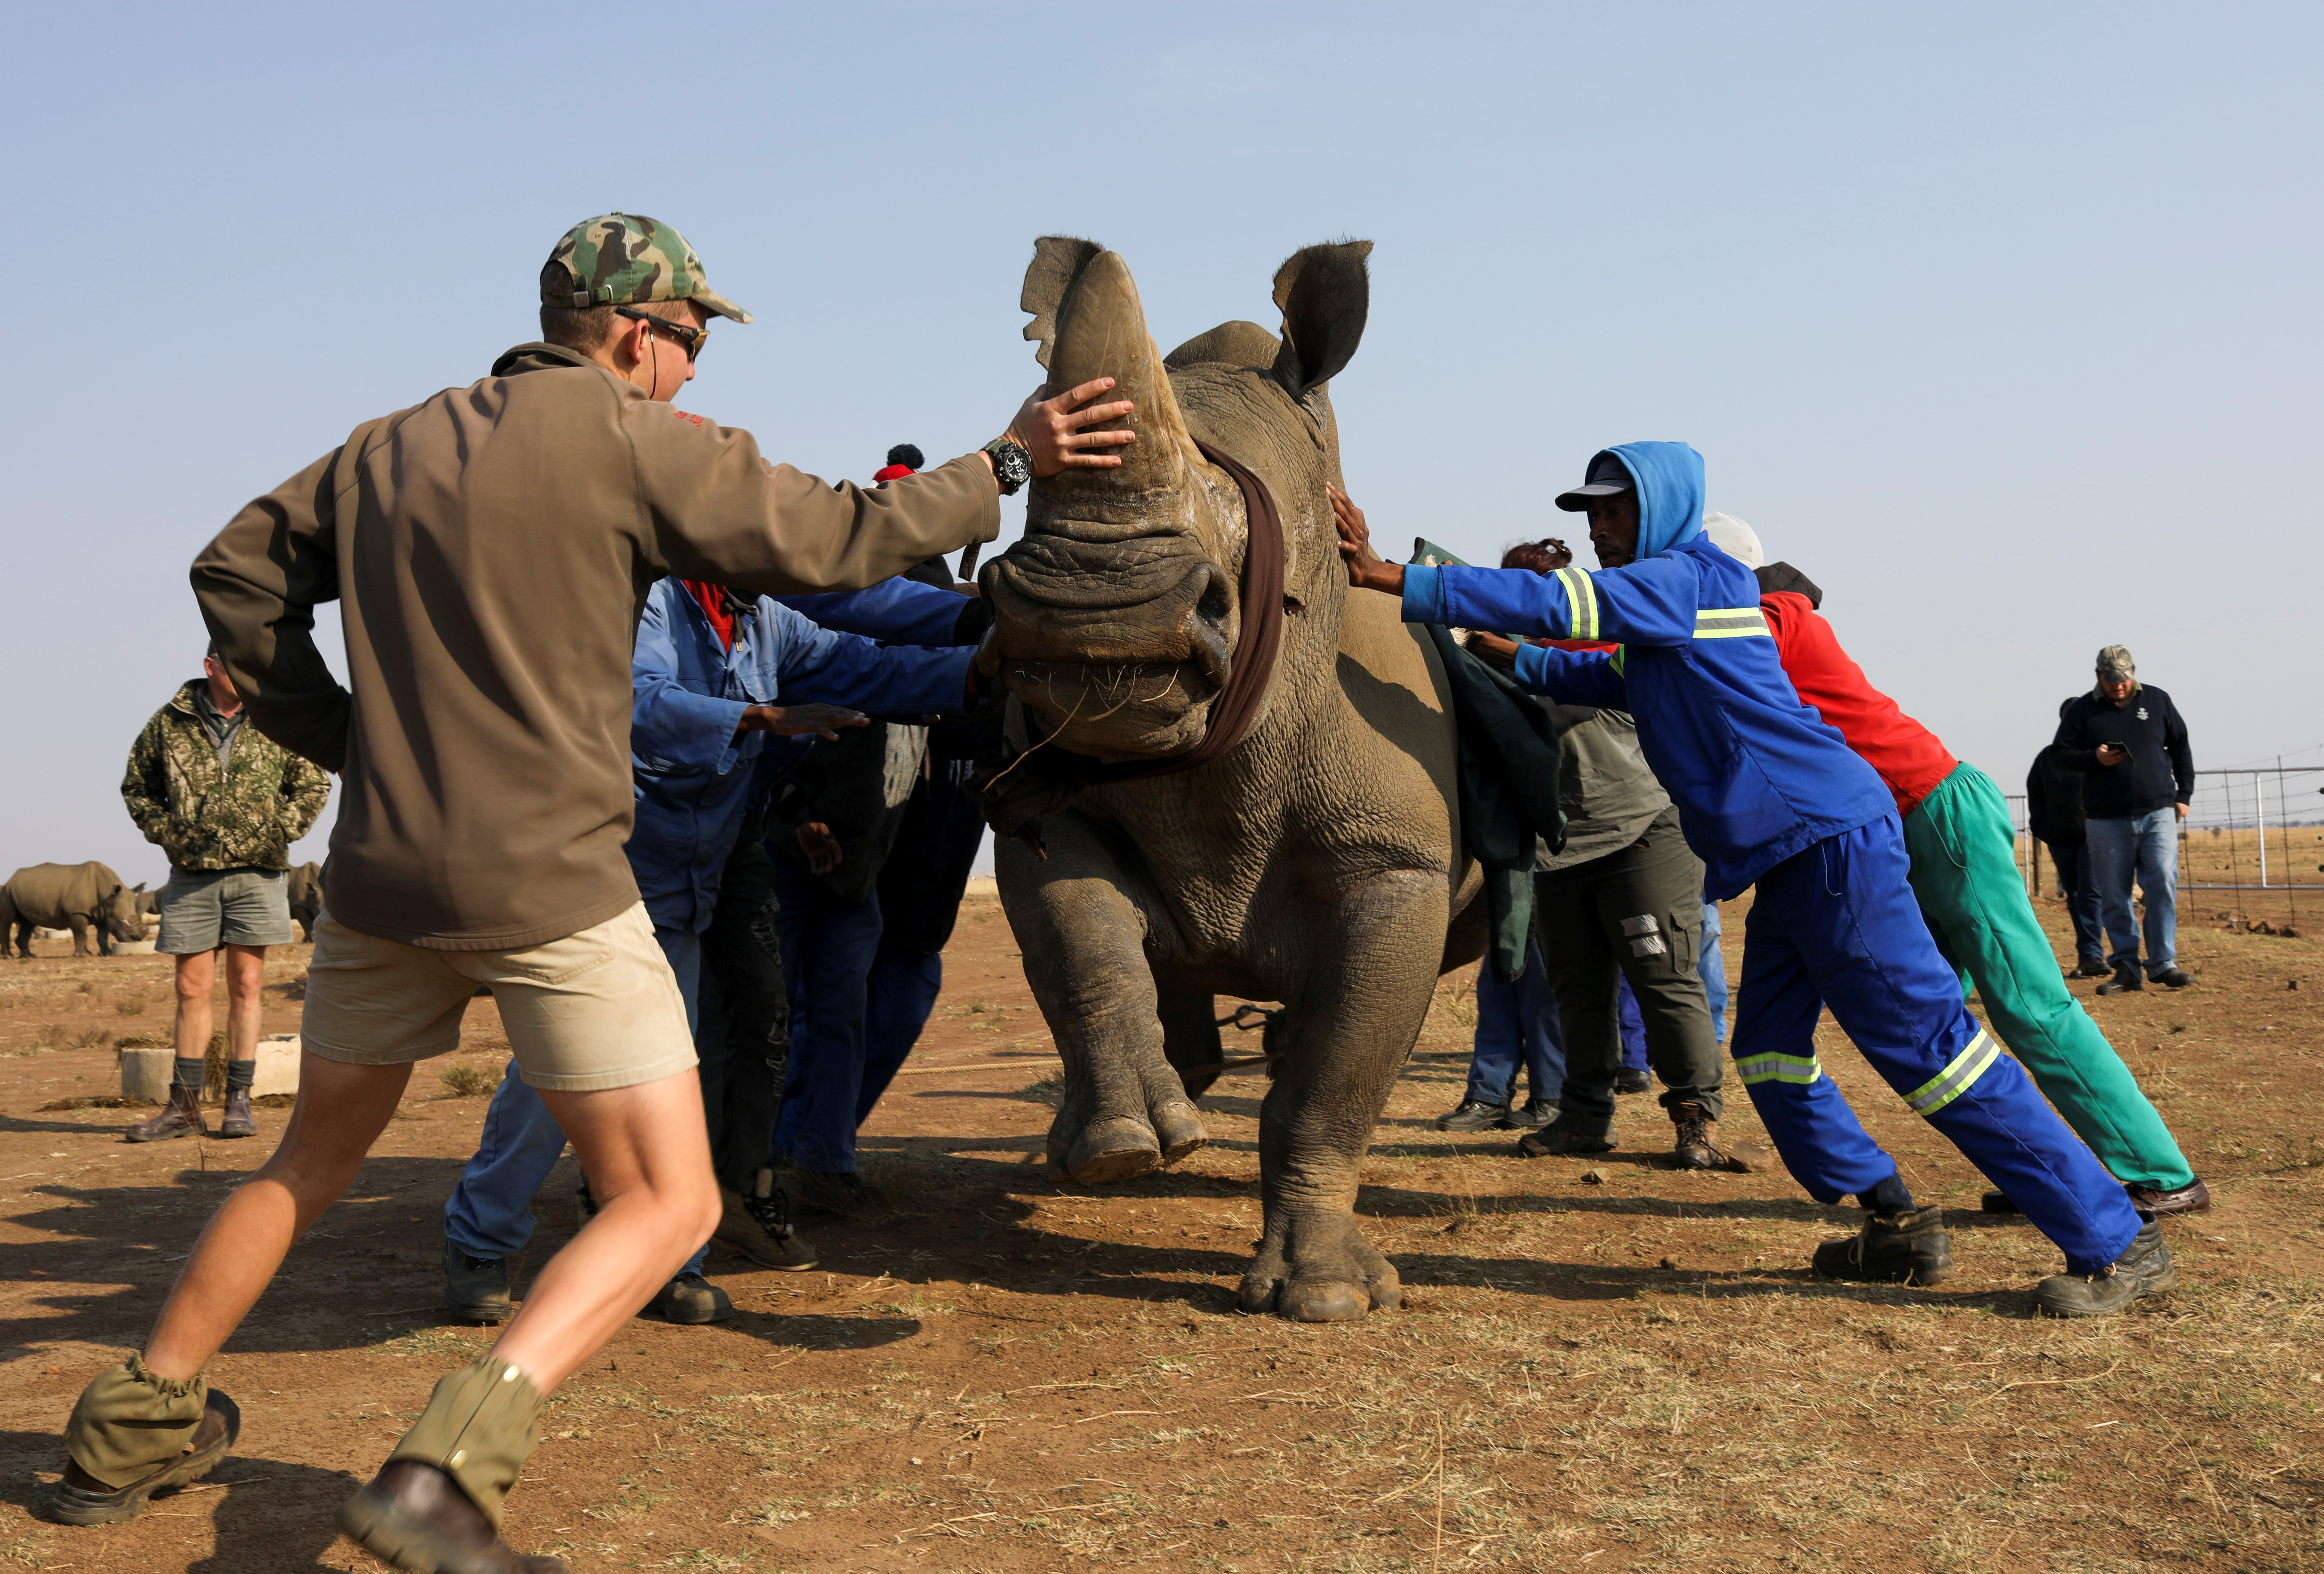 Workers attempt to bring a tranquillised rhino to the ground before dehorning it at the Buffalo Dream Ranch, the biggest private rhino sanctuary on the continent, in Klerksdorp, South Africa's North West Province, September 6, 2021.  REUTERS/Siphiwe Sibeko